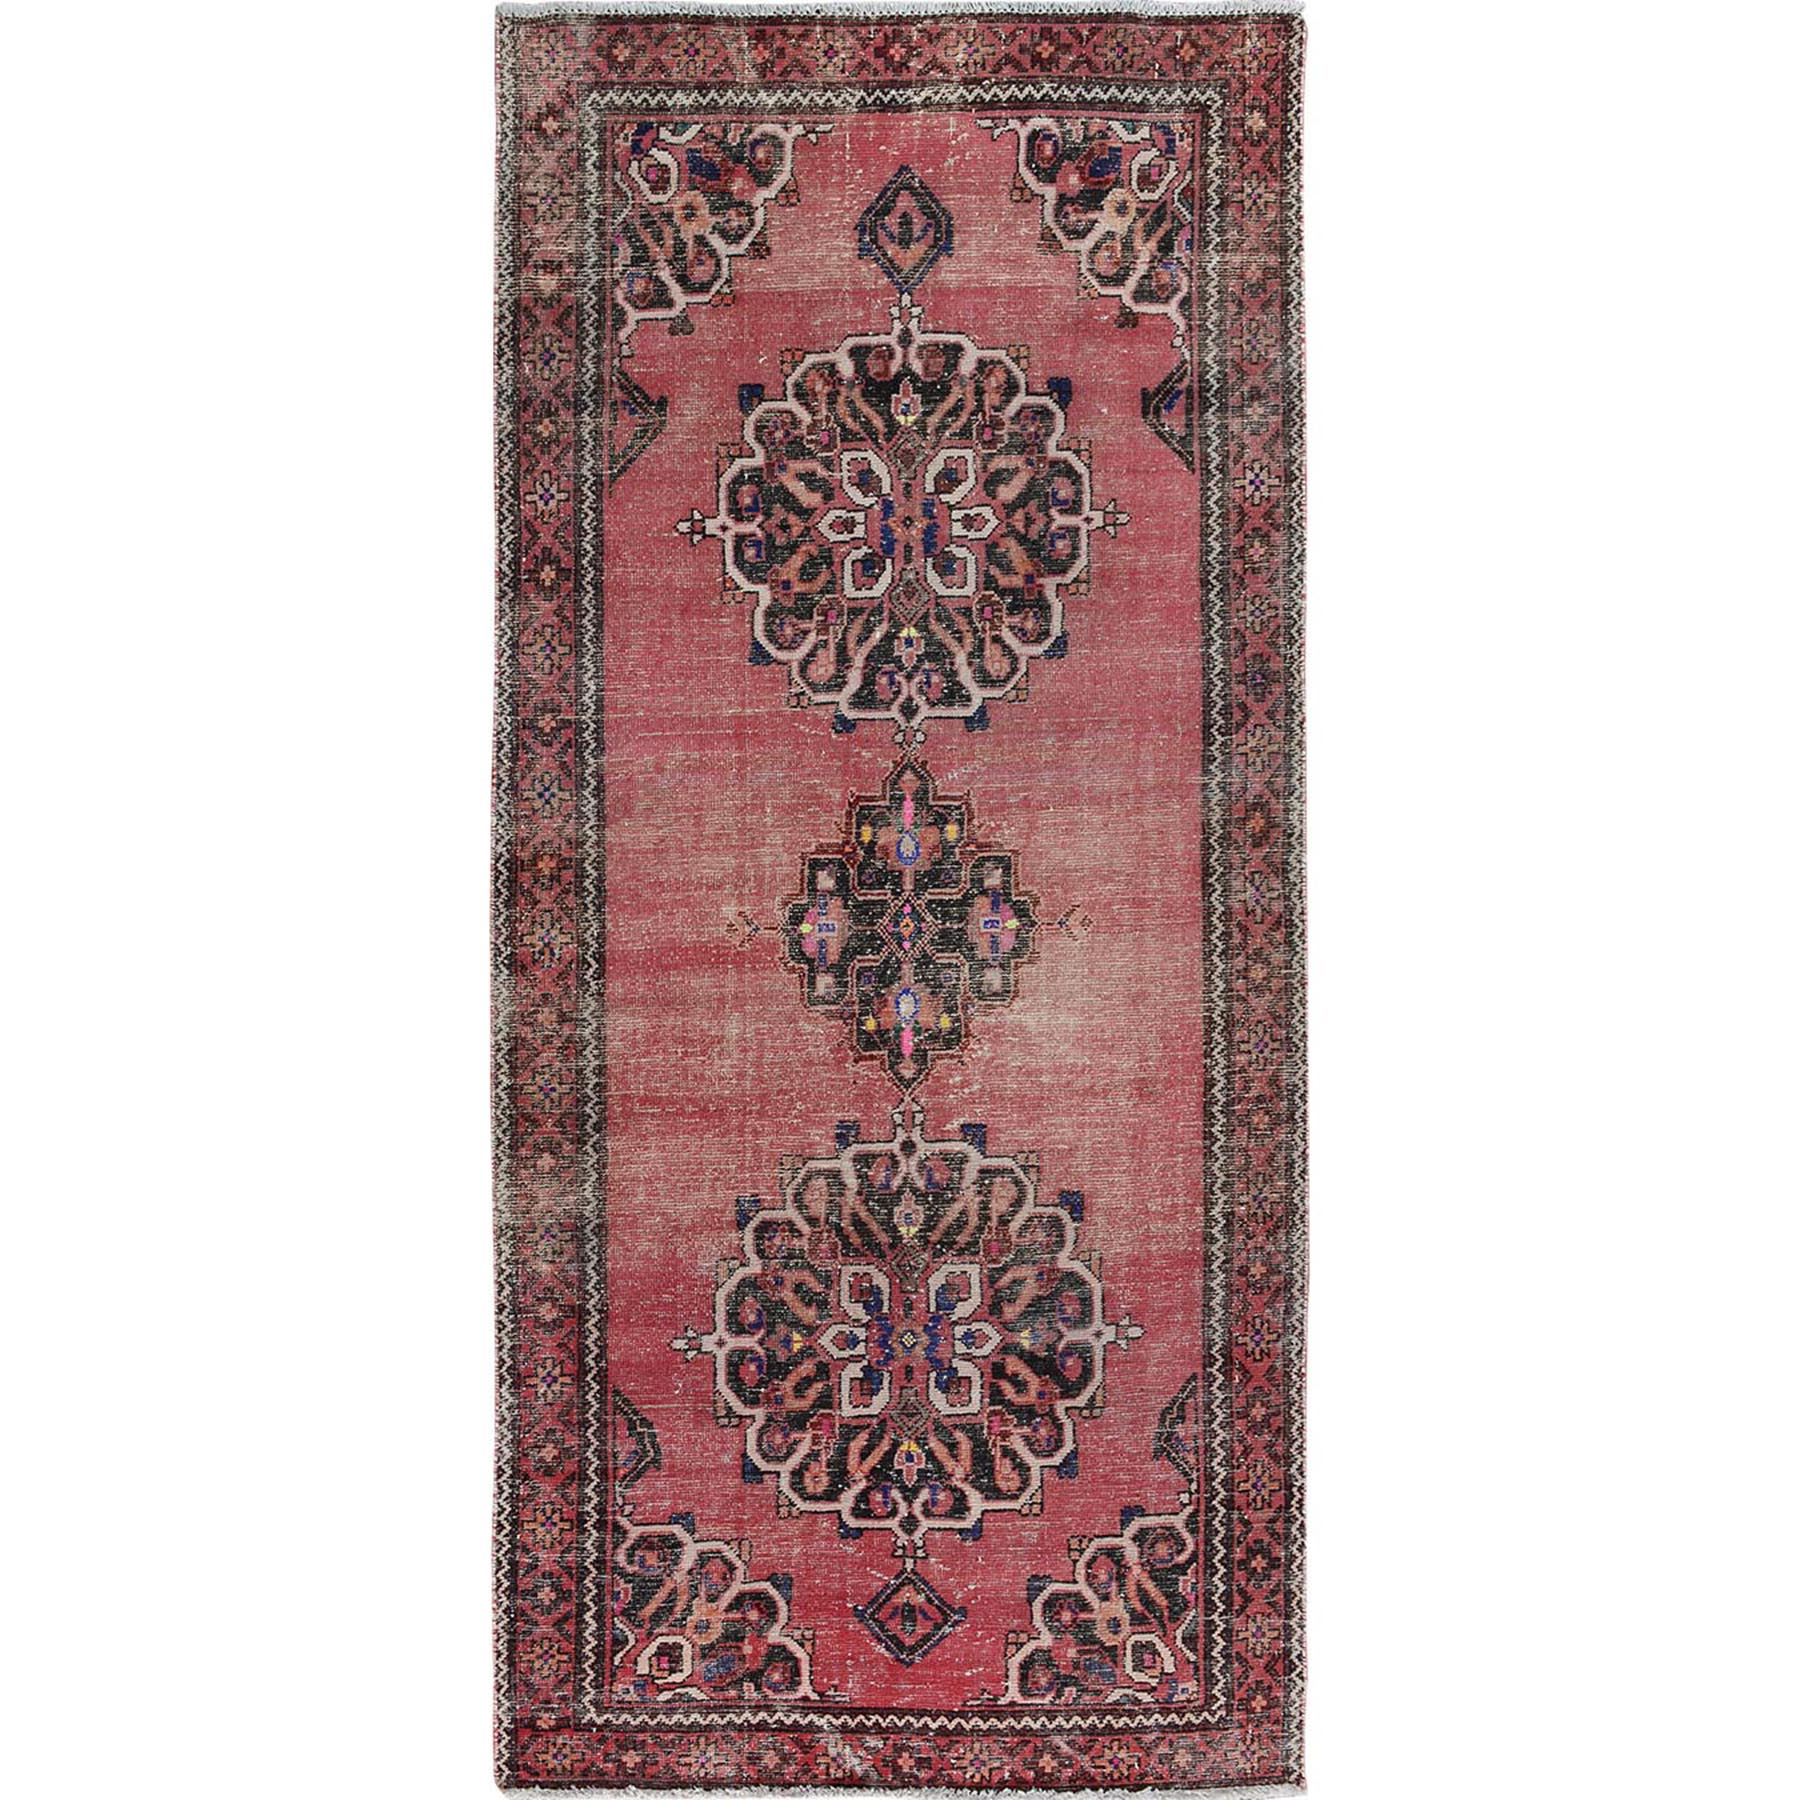 "4'X8'6"" Pink Old And Worn Down Persian Bakhtiari Pure Wool Hand Knotted Runner Oriental Rug moae7aee"